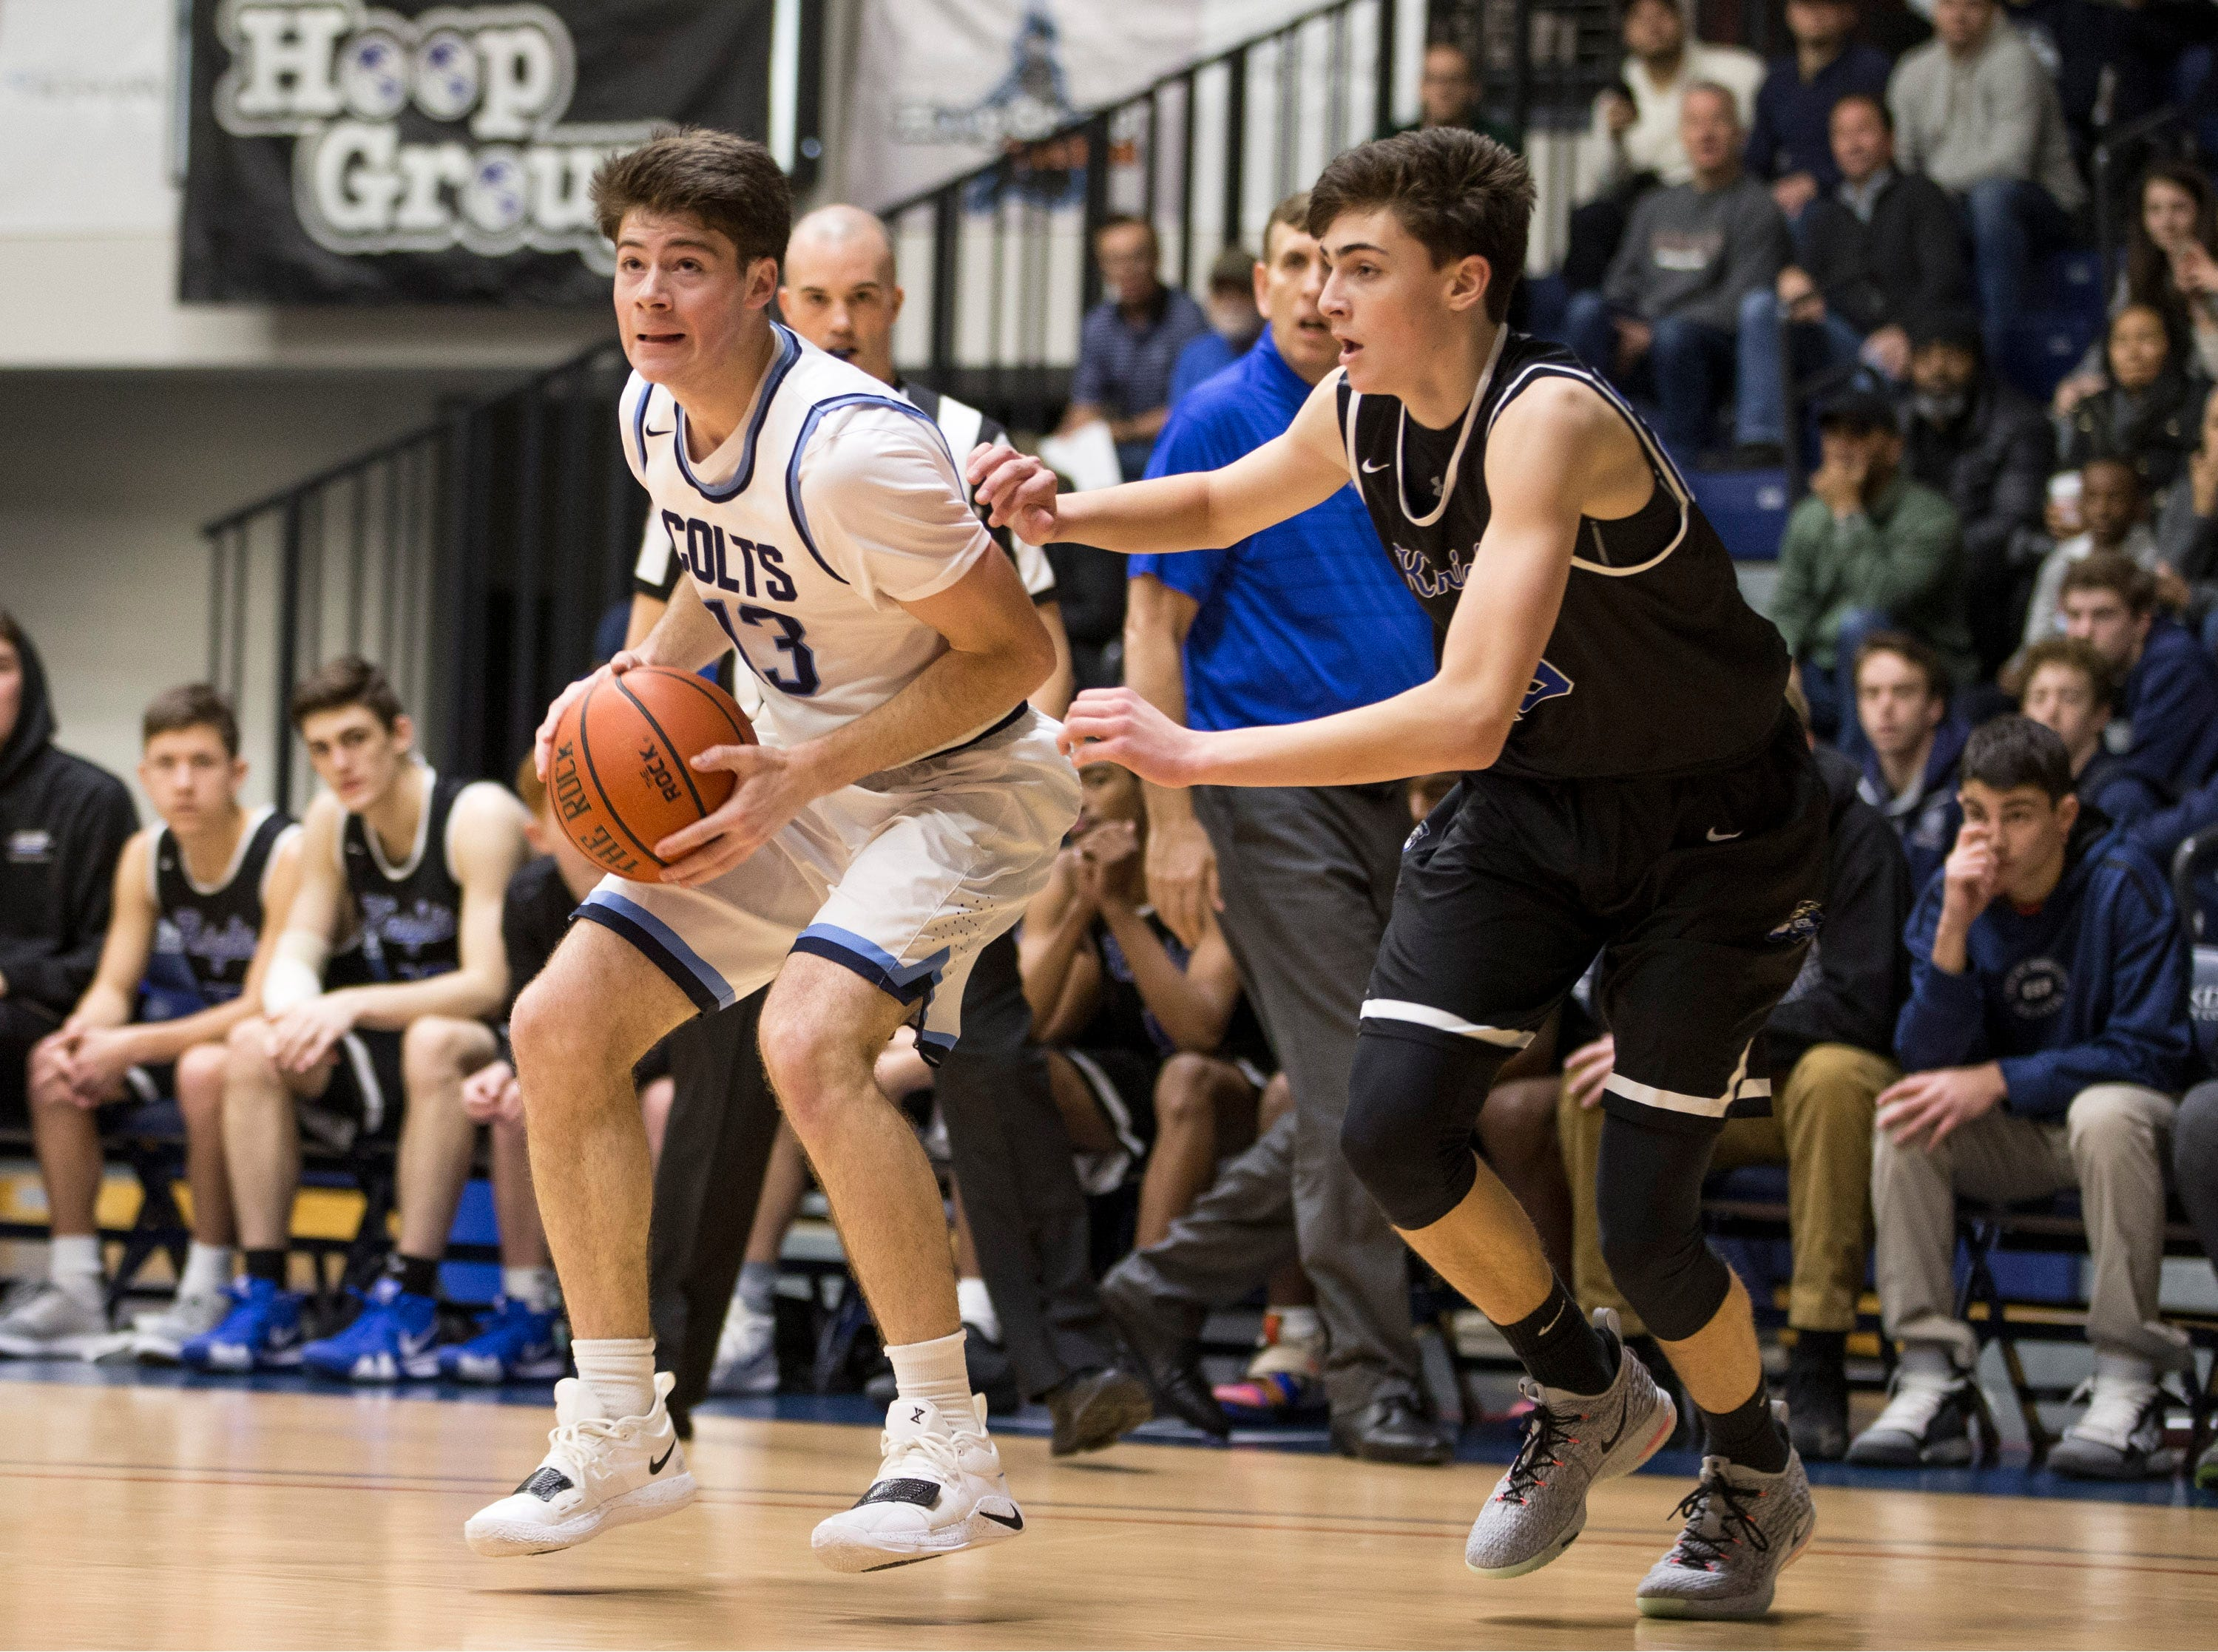 Joshua Cohen of Christian Brothers Academy in first half action. The 2019 Boardwalk Hoop Group Showcase tournament takes place at Brookdale Community College. Game one features Gill St. Bernard's vs Christian Brothers Academy. Middletown, NJSaturday, January 12, 2019